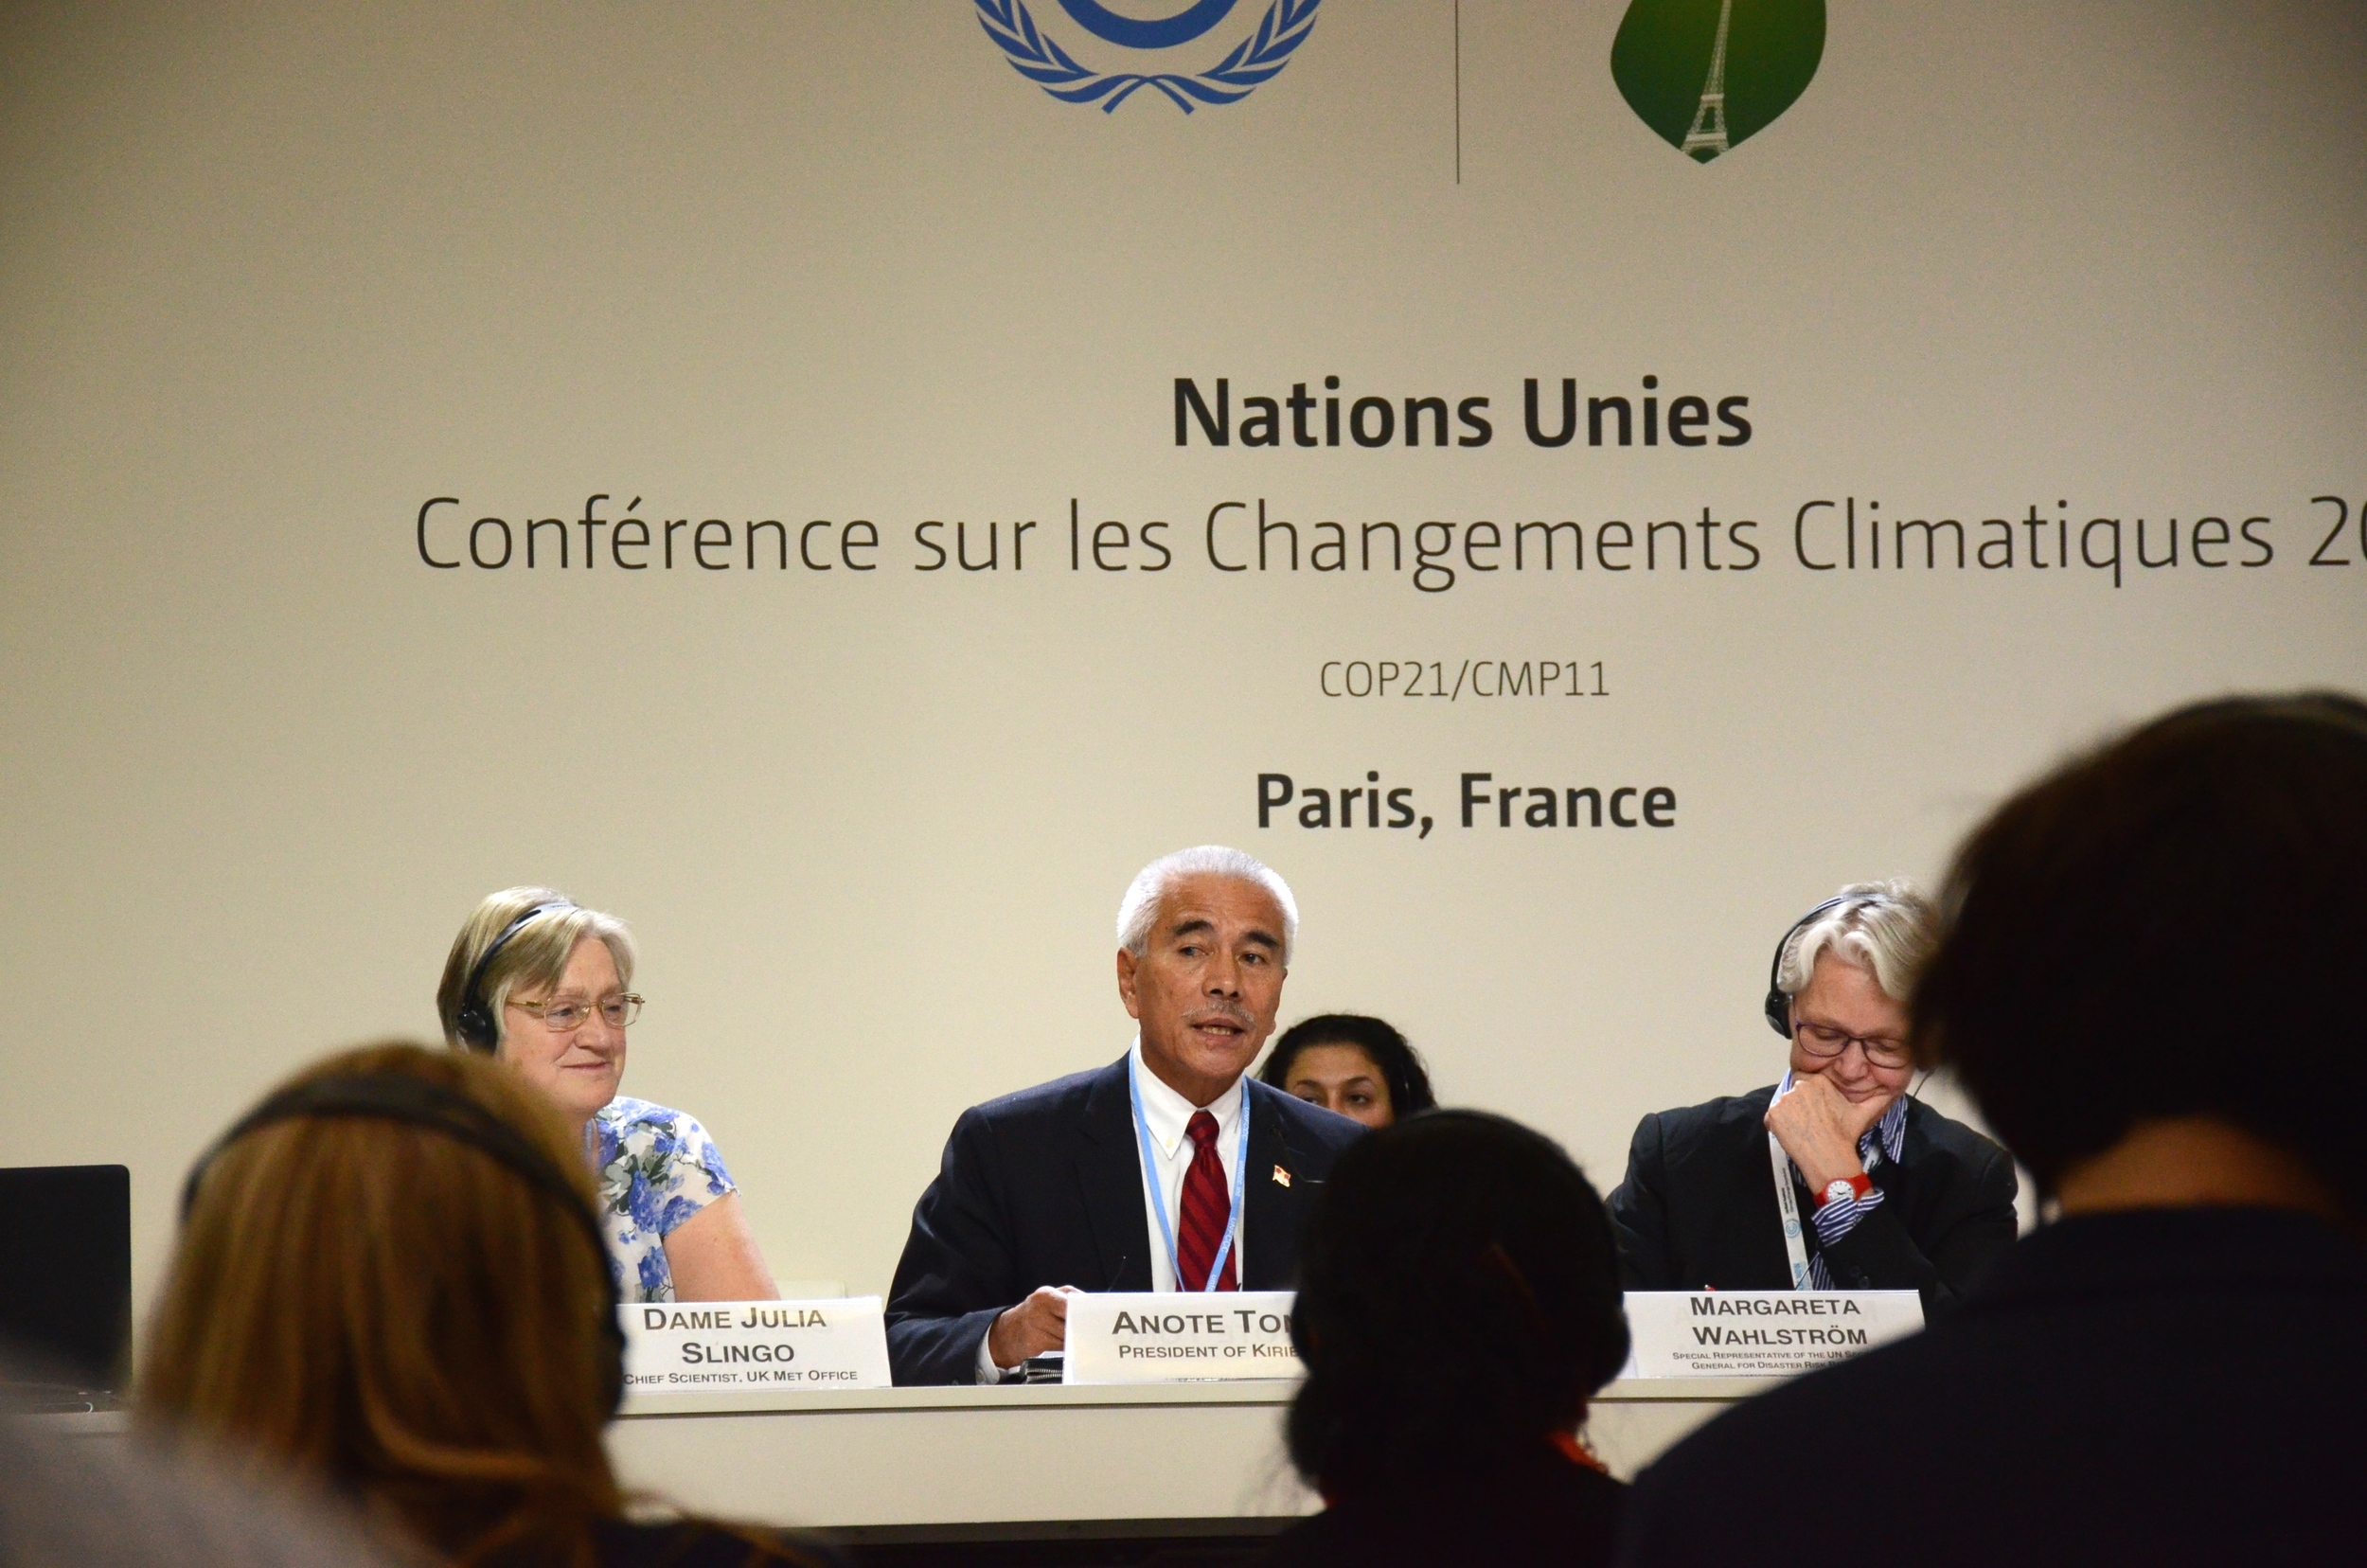 """""""Our plea is very simple: Let us give substance to the pledges that are made. Let us not pay lip-service to an issue that requires urgent action. """"  Kiribati President Anote Tong speaks at an event at COP21. Photo credit: Mattea Mrkusic."""